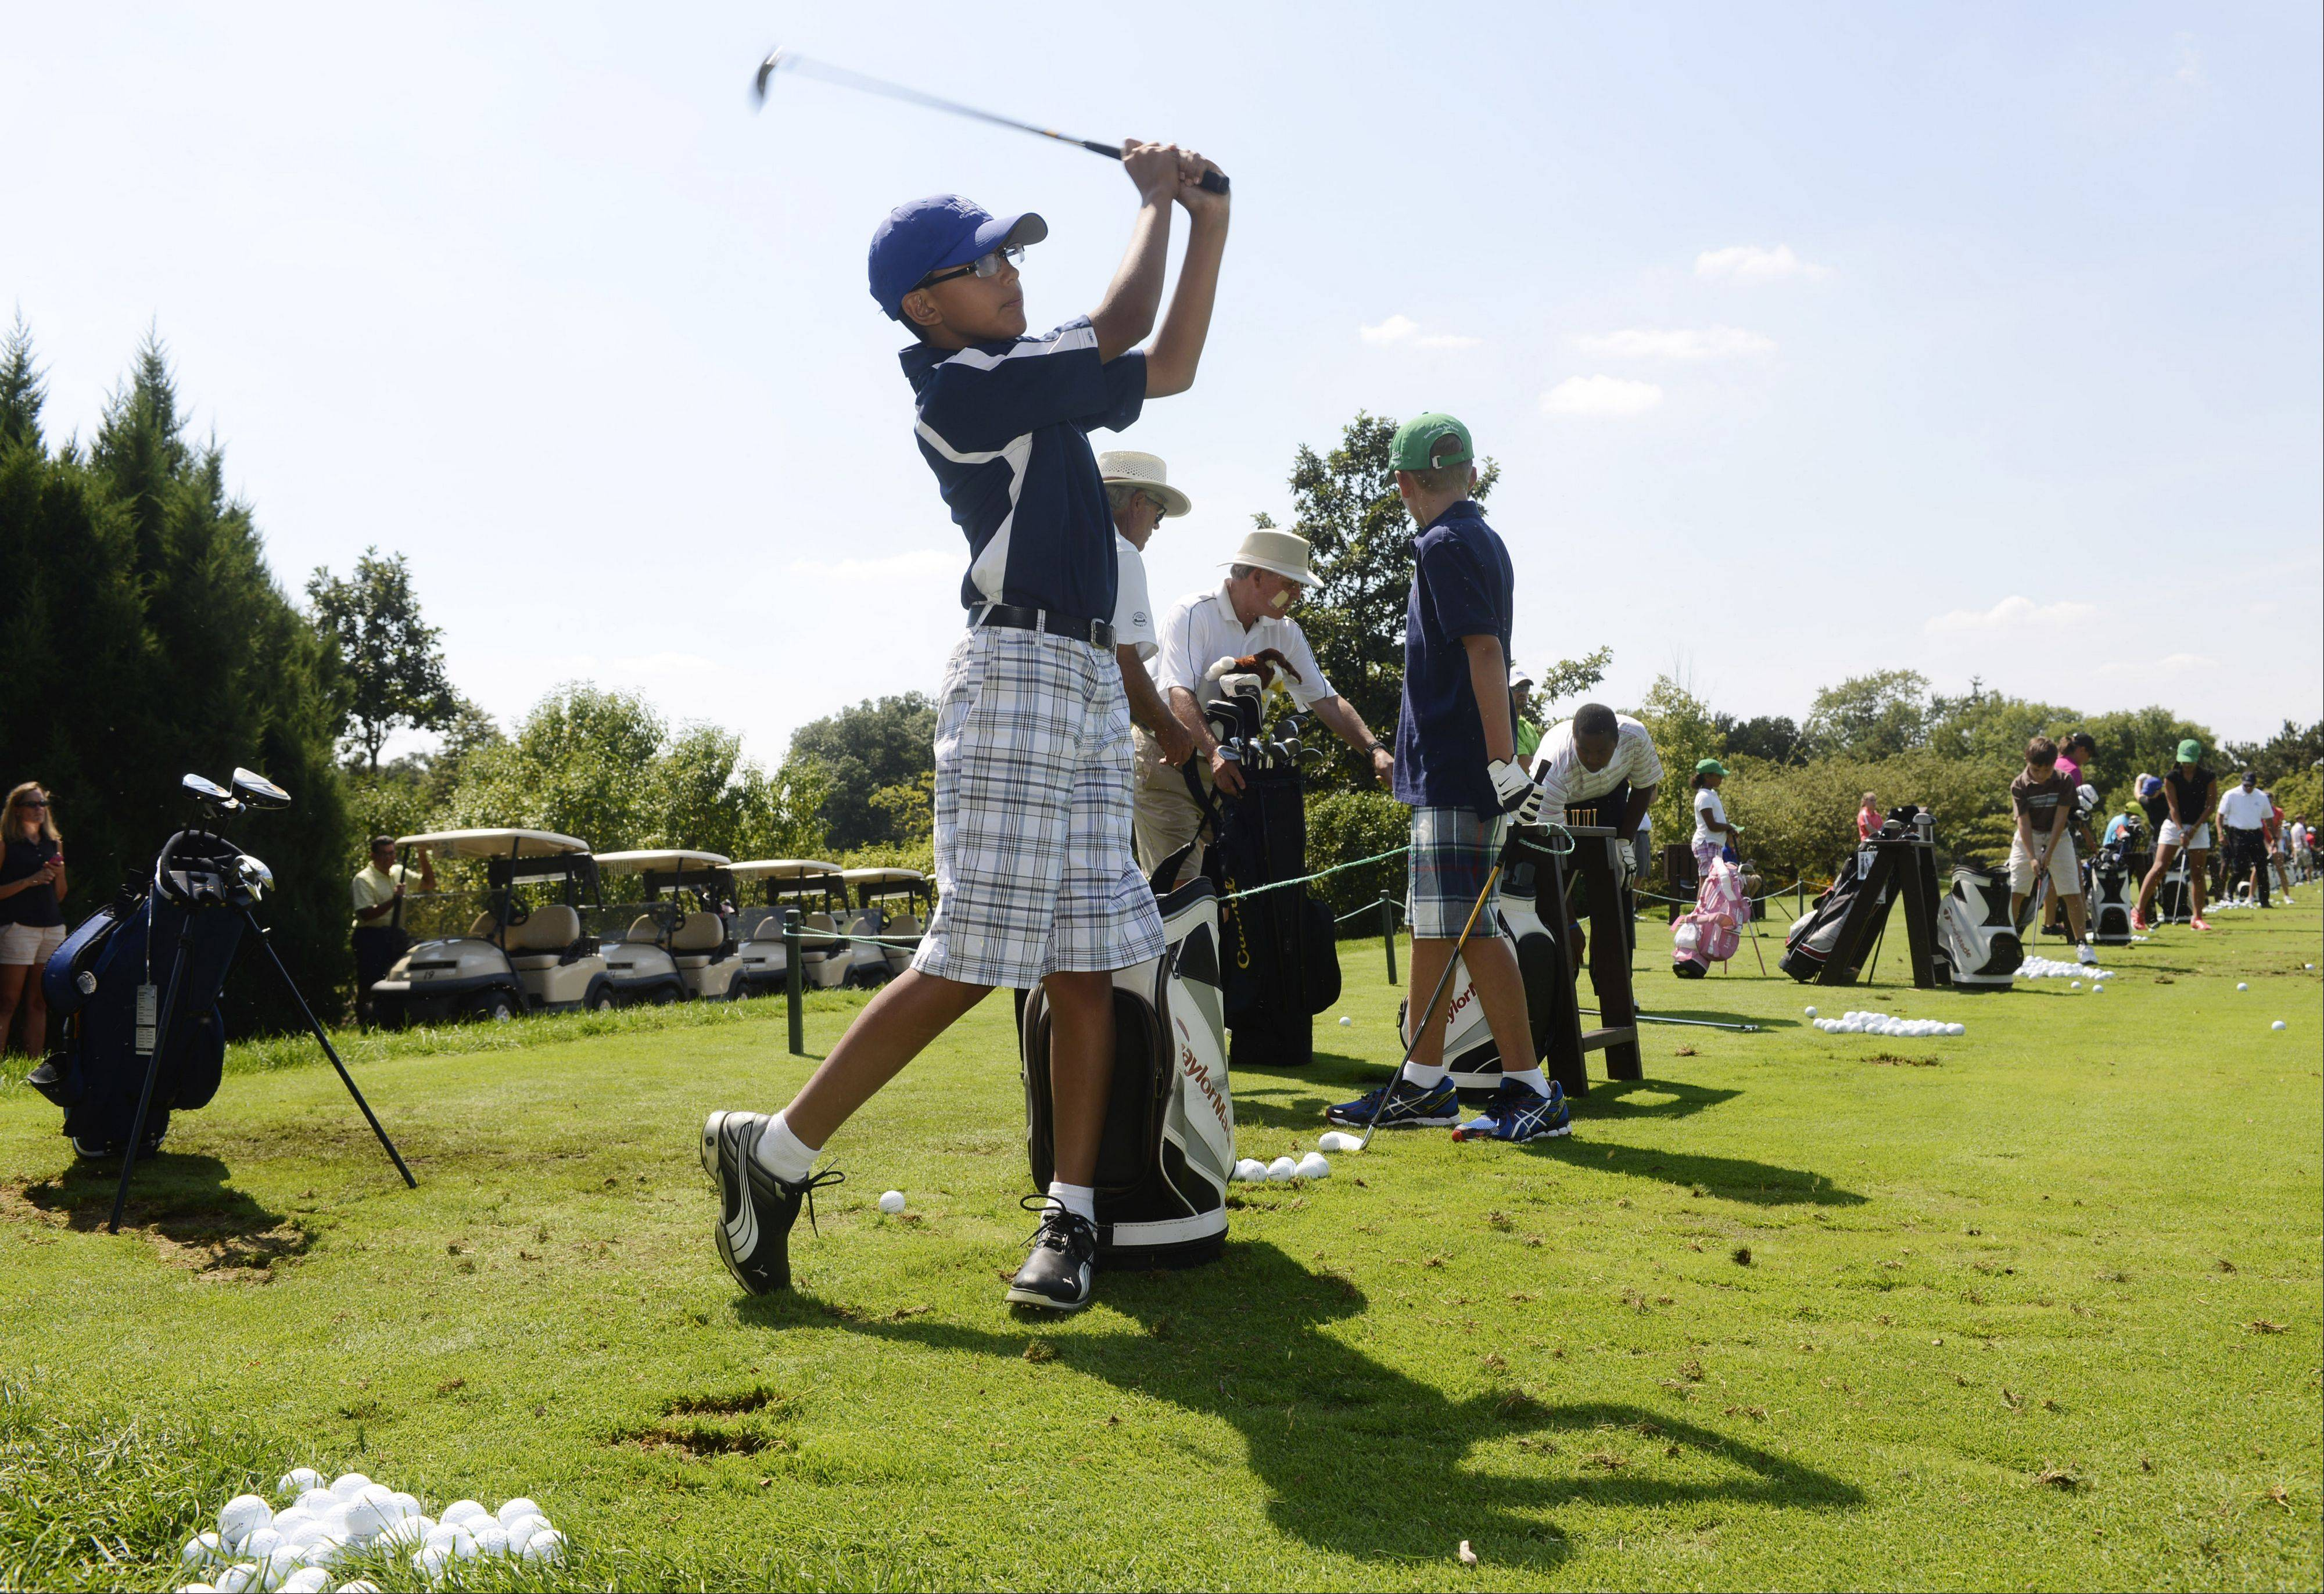 Daniel Bedon, 11, of Chicago practices his swing on the driving range during the First Tee golf event at Ivanhoe Club near Mundelein. First Tee uses the game of golf to provide education programs that build character. Thirteen kids were rewarded for their good choices with a special day at Ivanhoe.